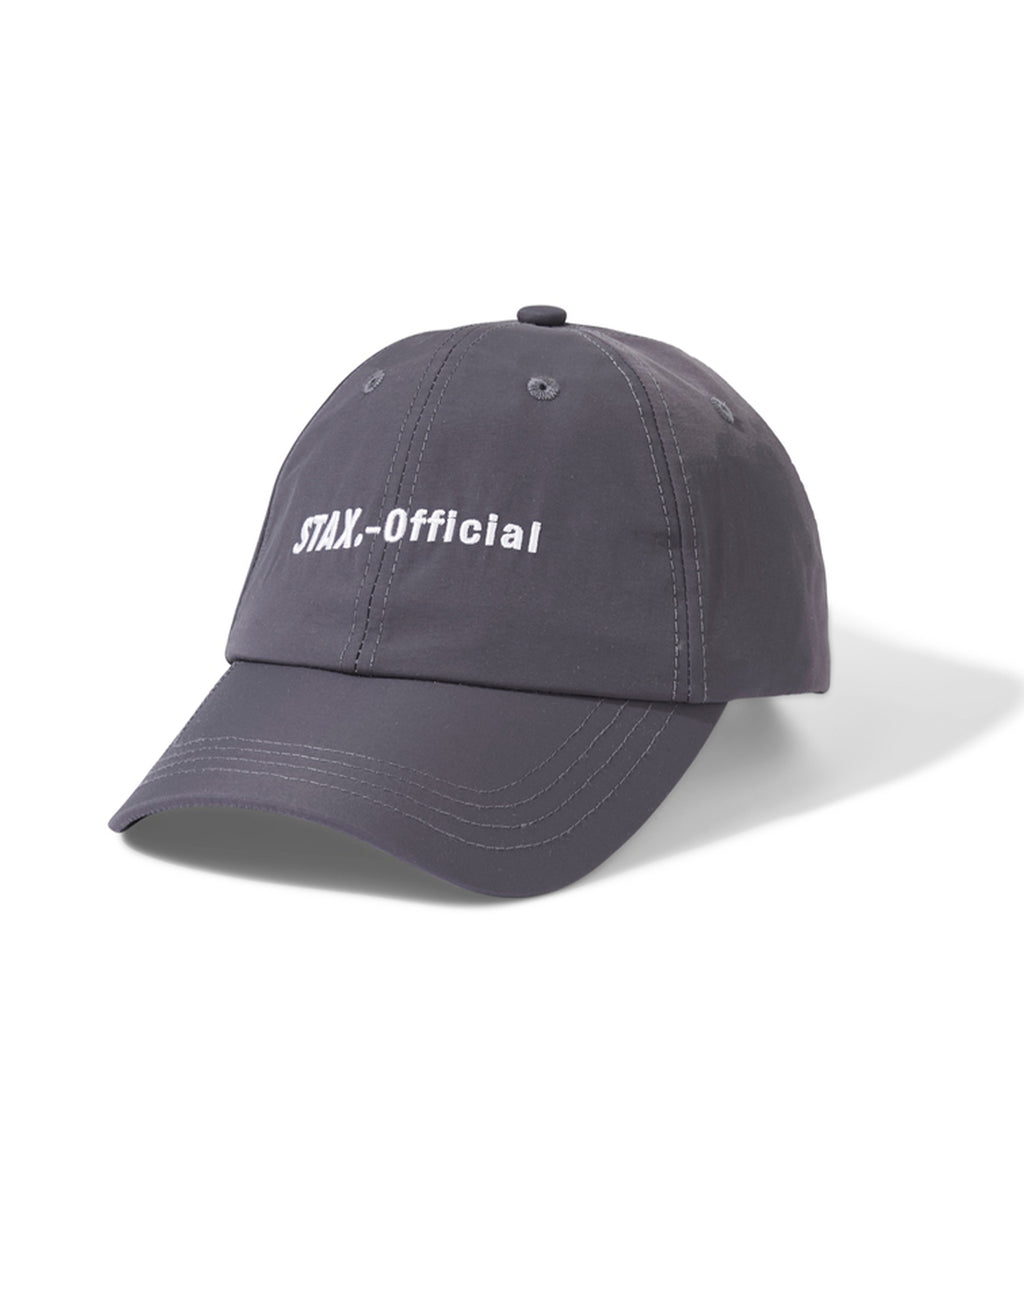 STAX.-Official  DAD HAT - GREY